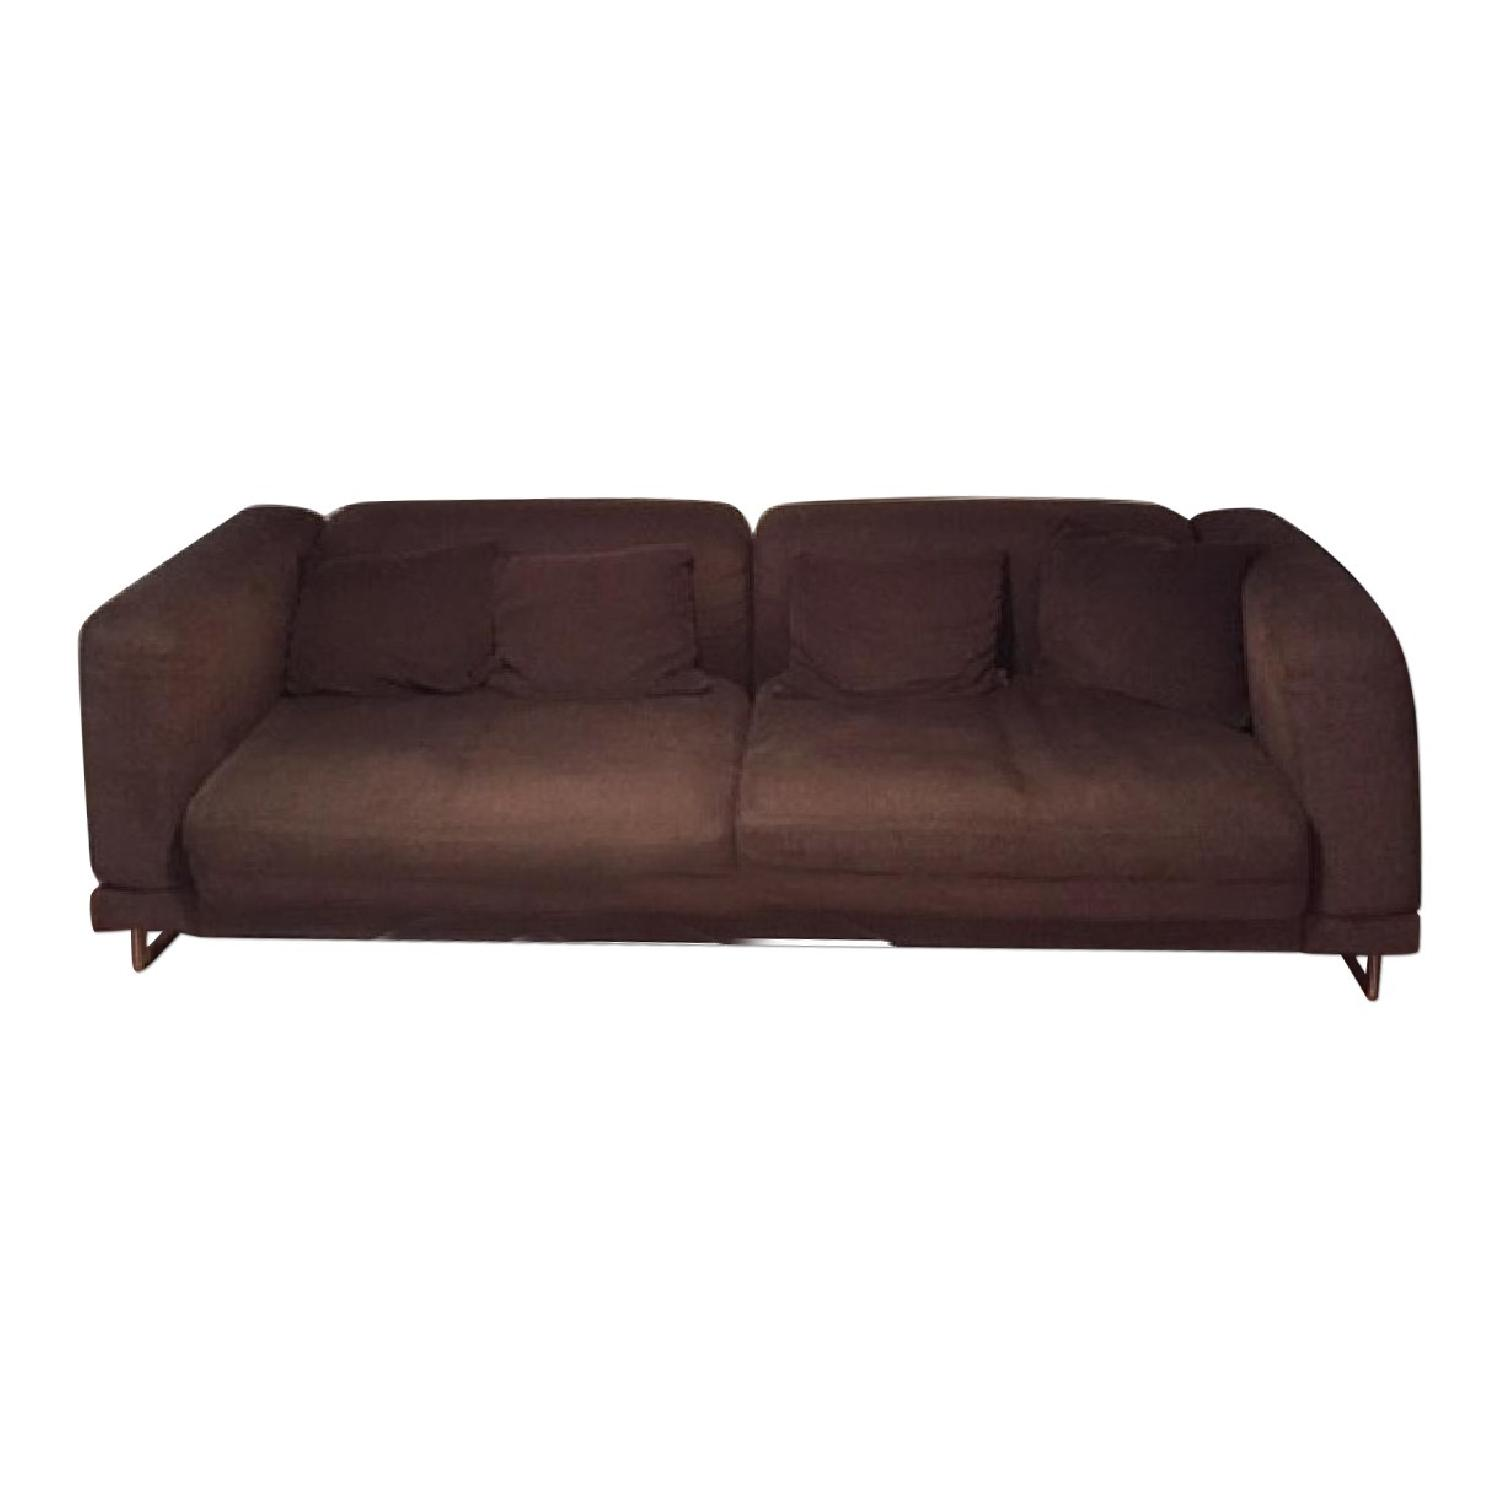 ikea tylosand sofa cool sets j horn furniture light brown leather sleeper with